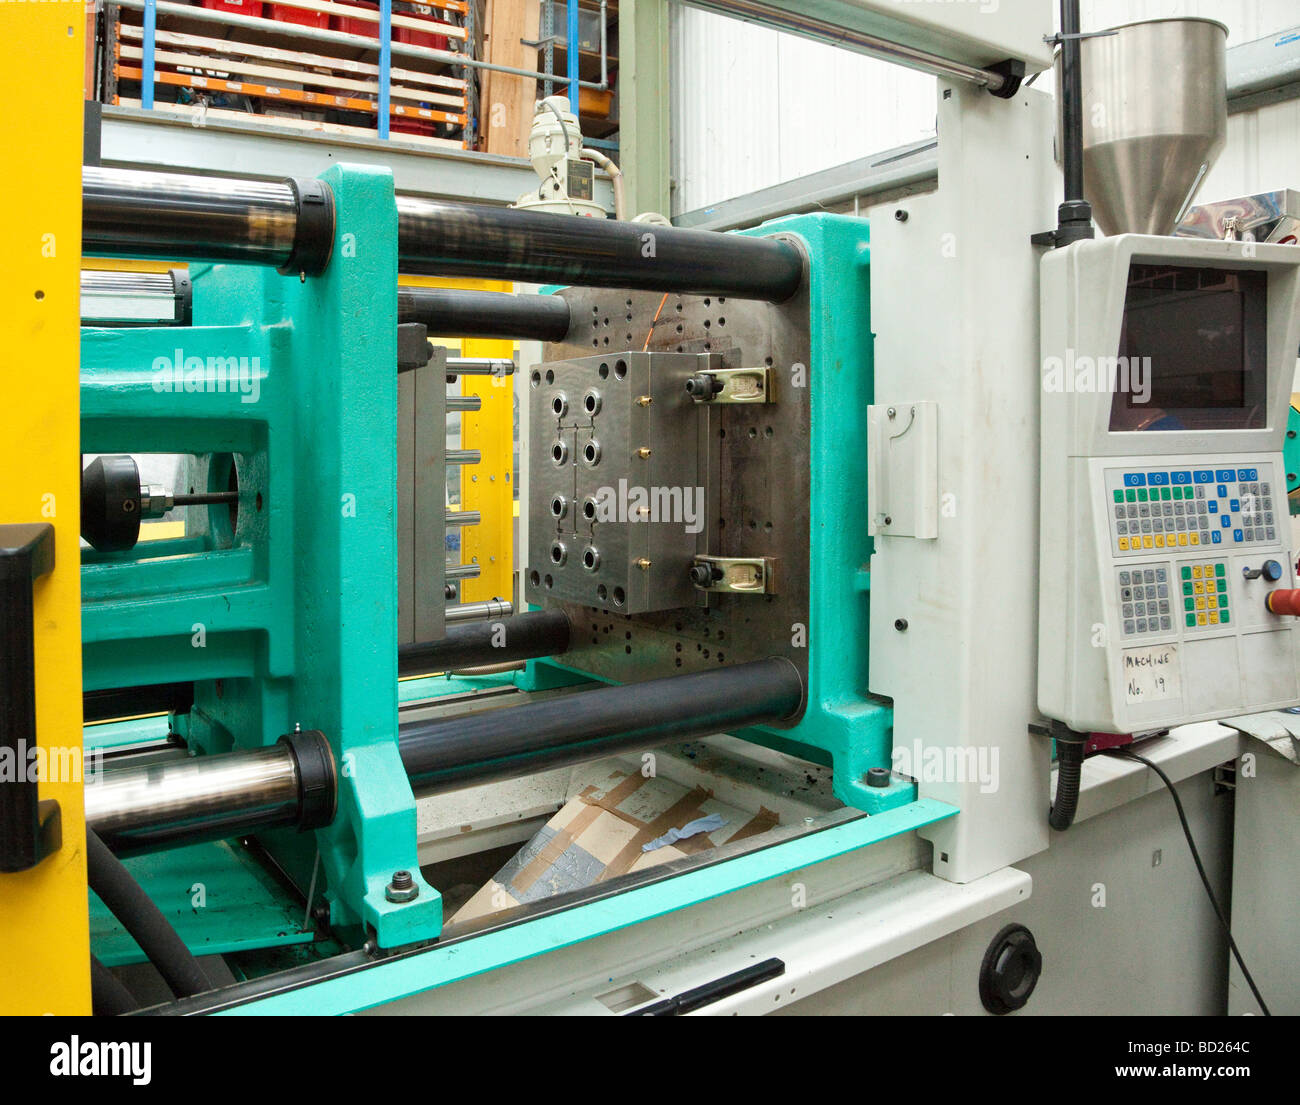 injection moulding machine for manufacture of plastic parts - Stock Image